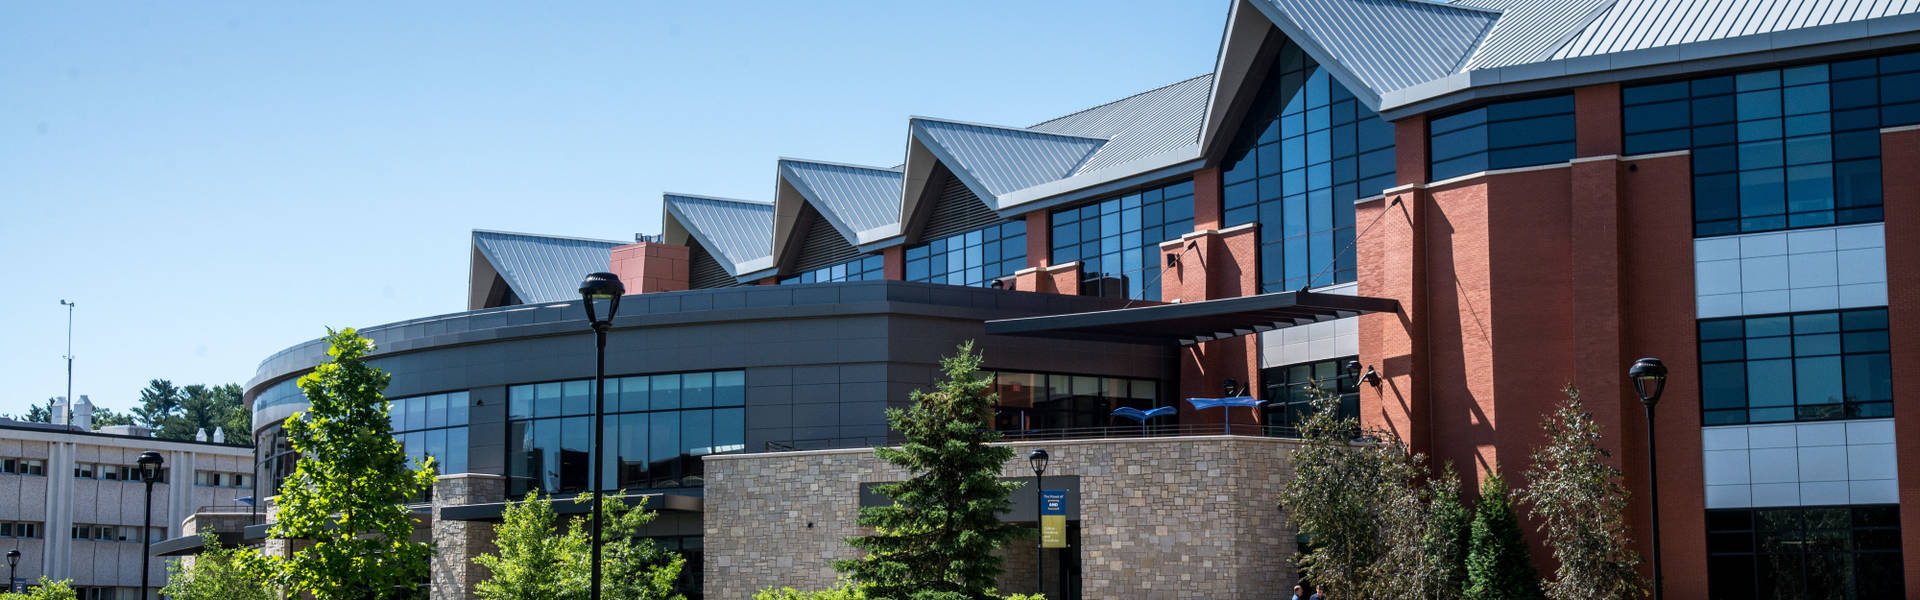 Exterior view of Davies Center in the summer